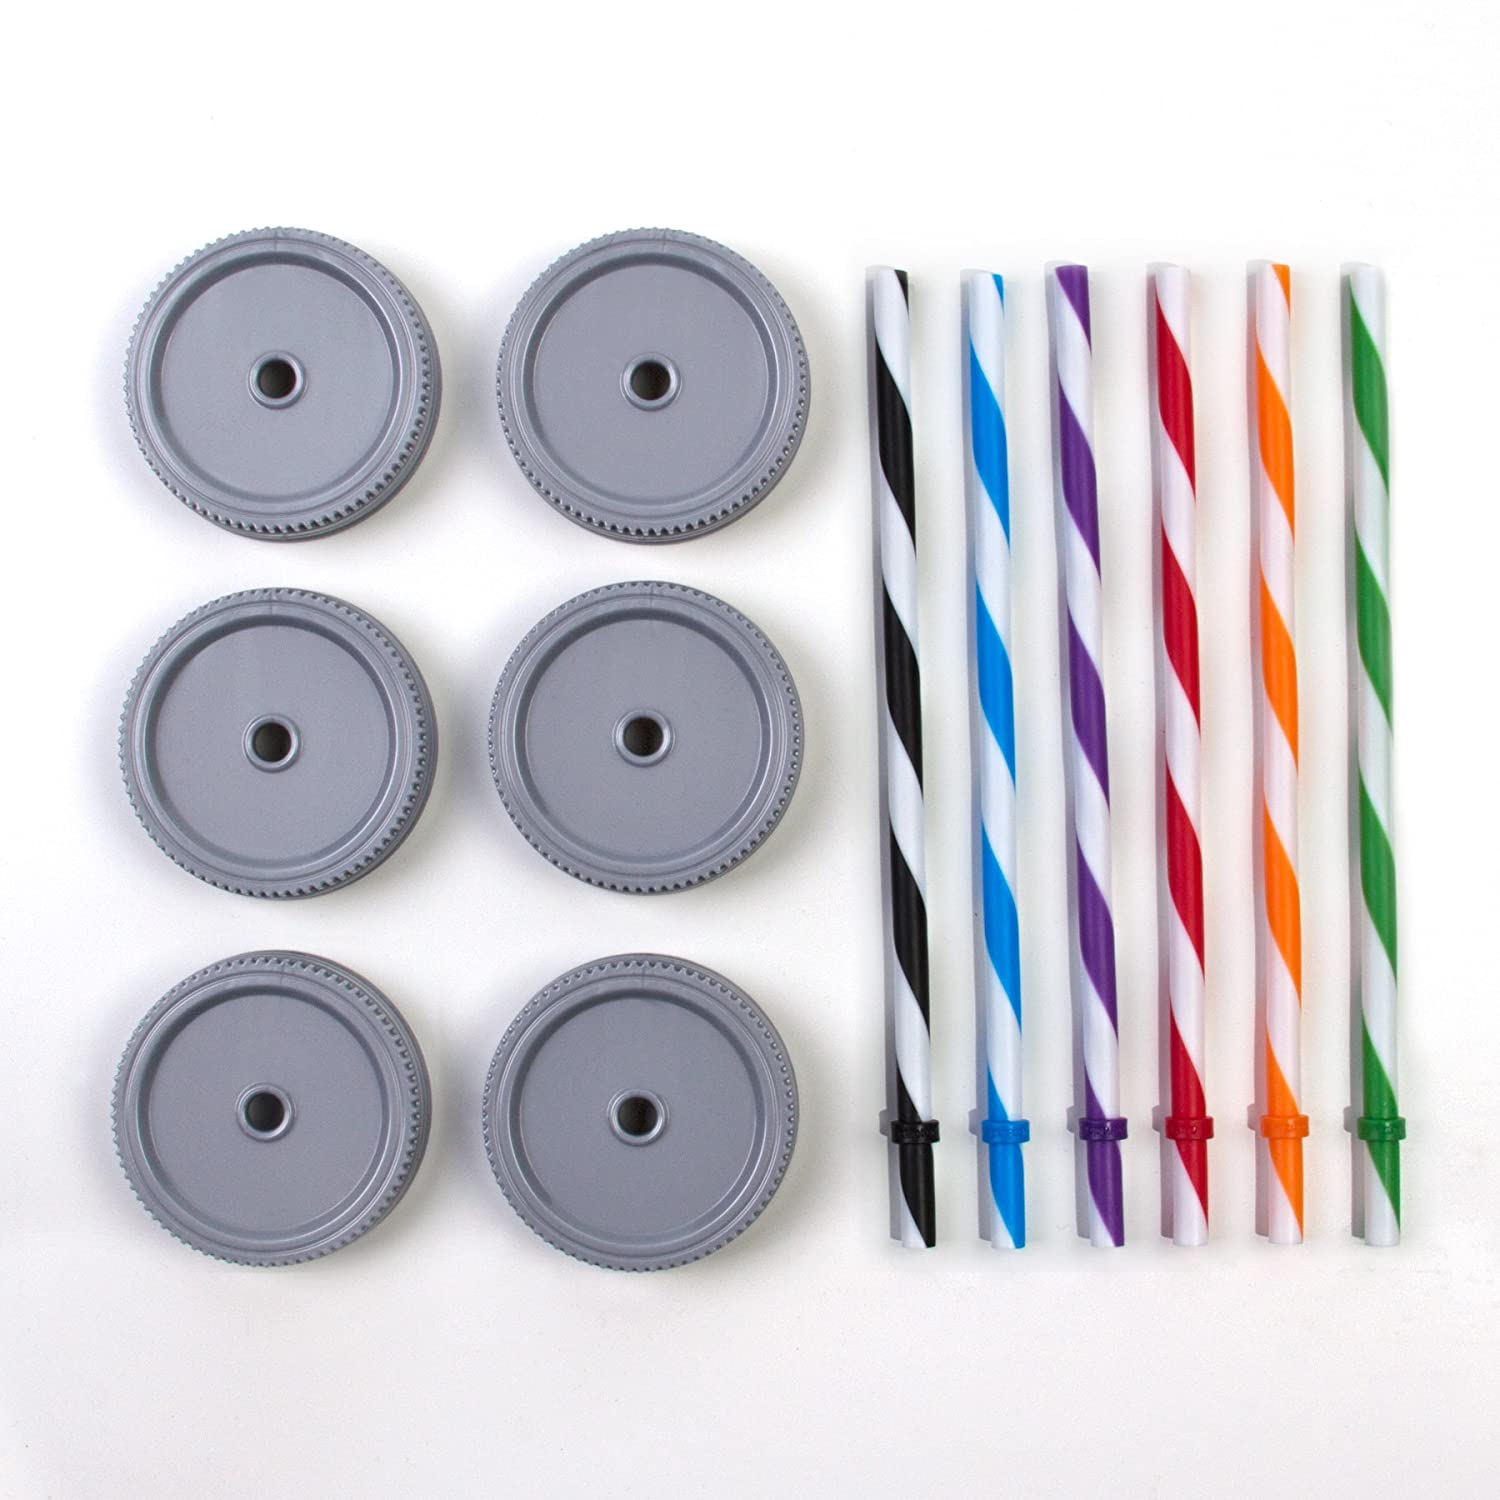 Straw Lids and Straws